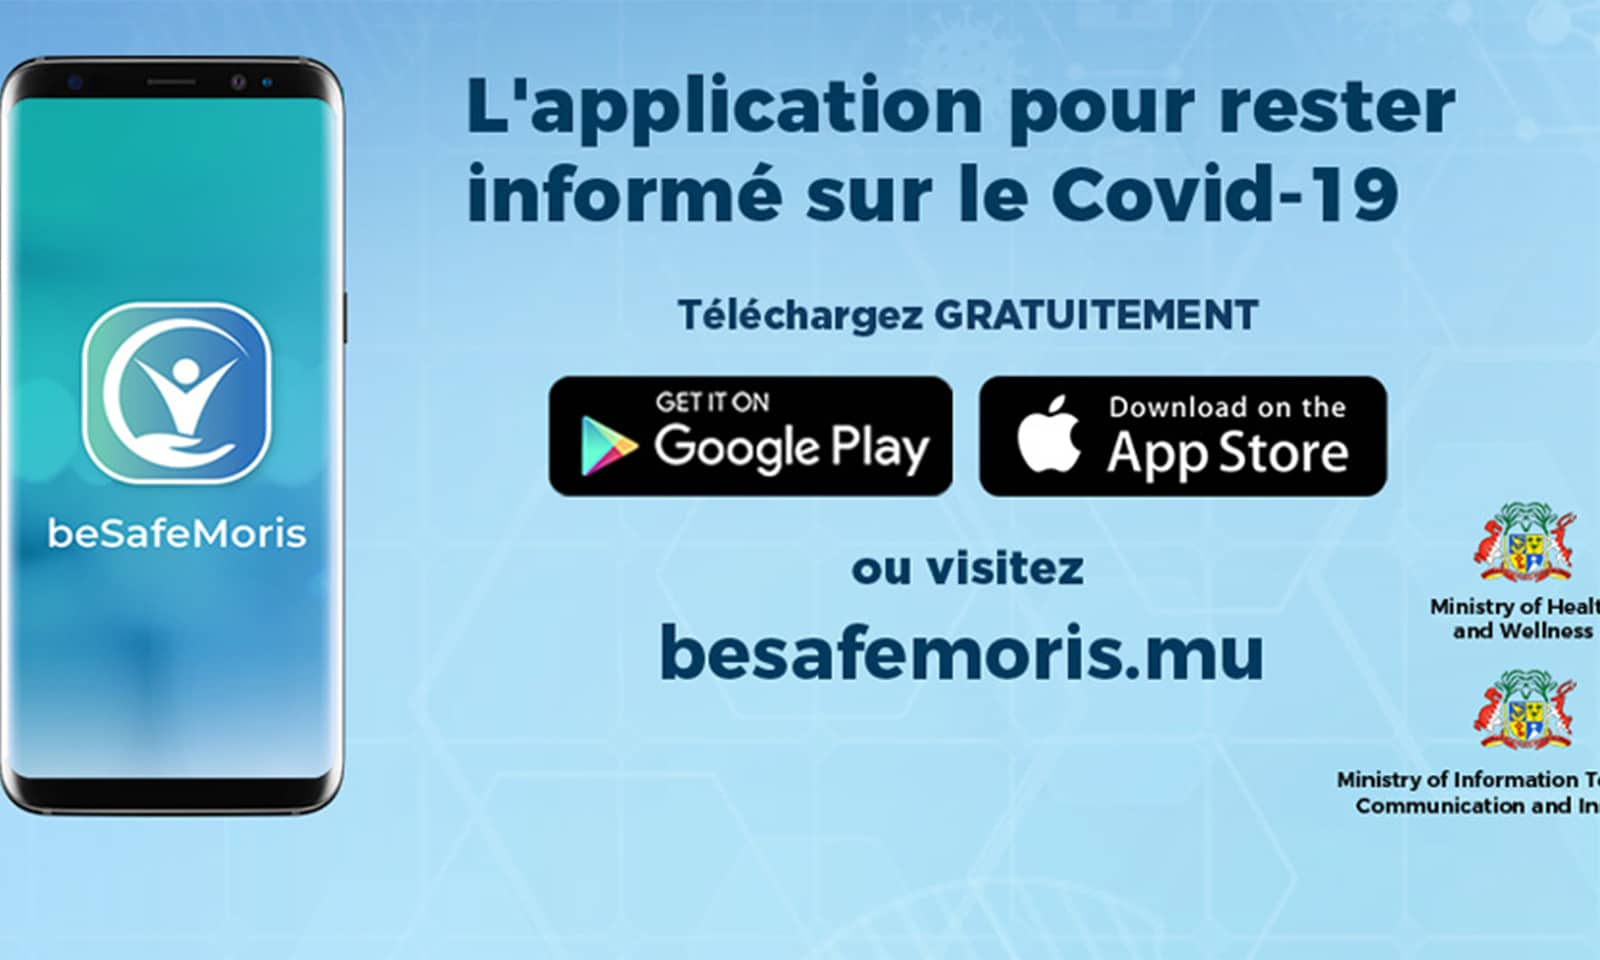 beSafeMoris-application-mobile-covid-19